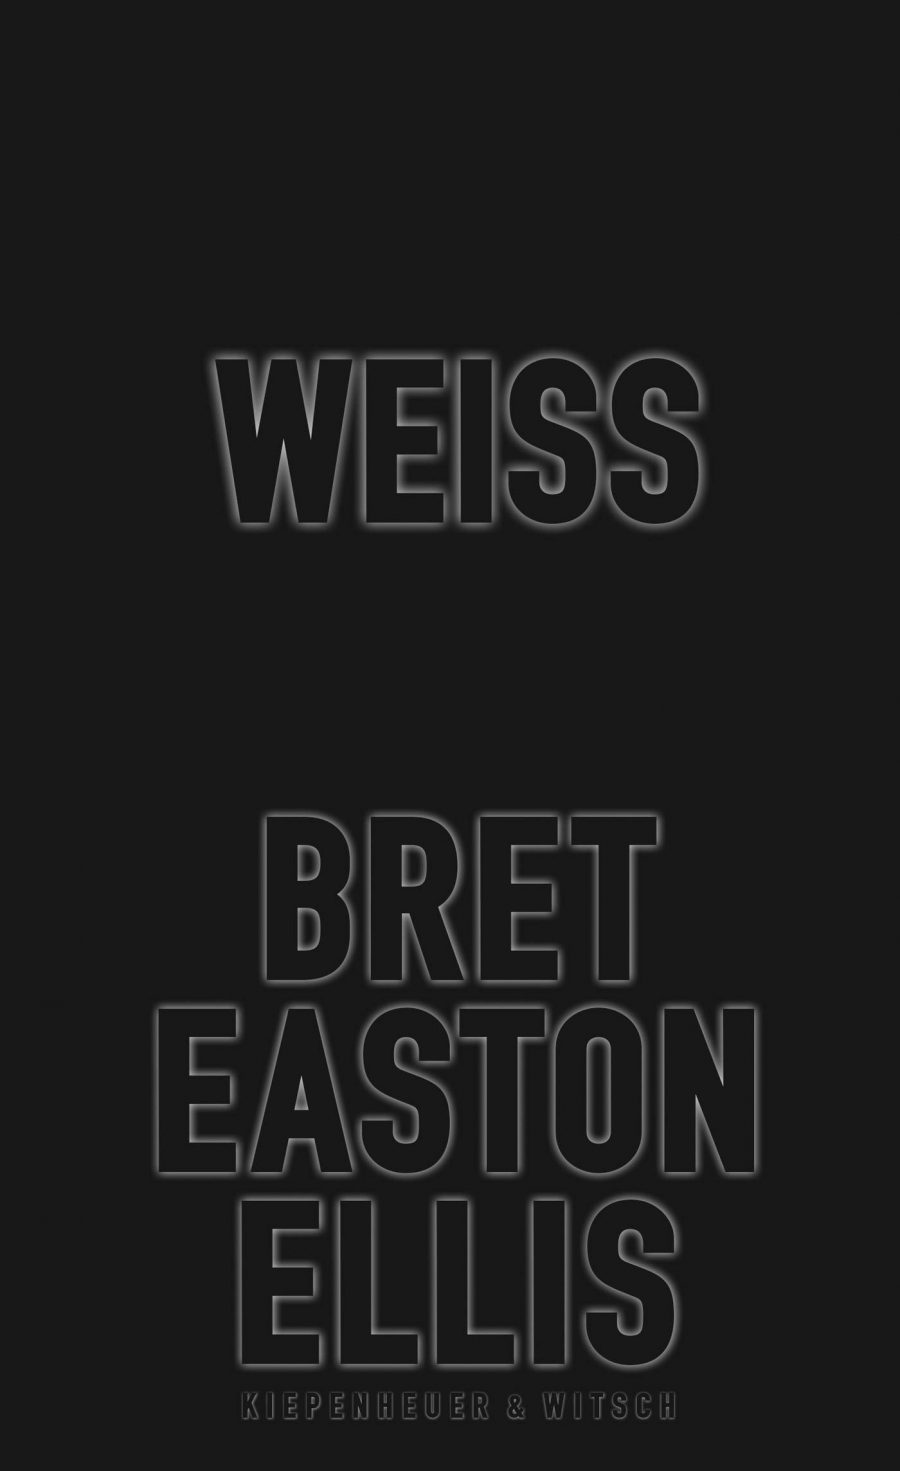 Bret Easton Ellis mit Weiß